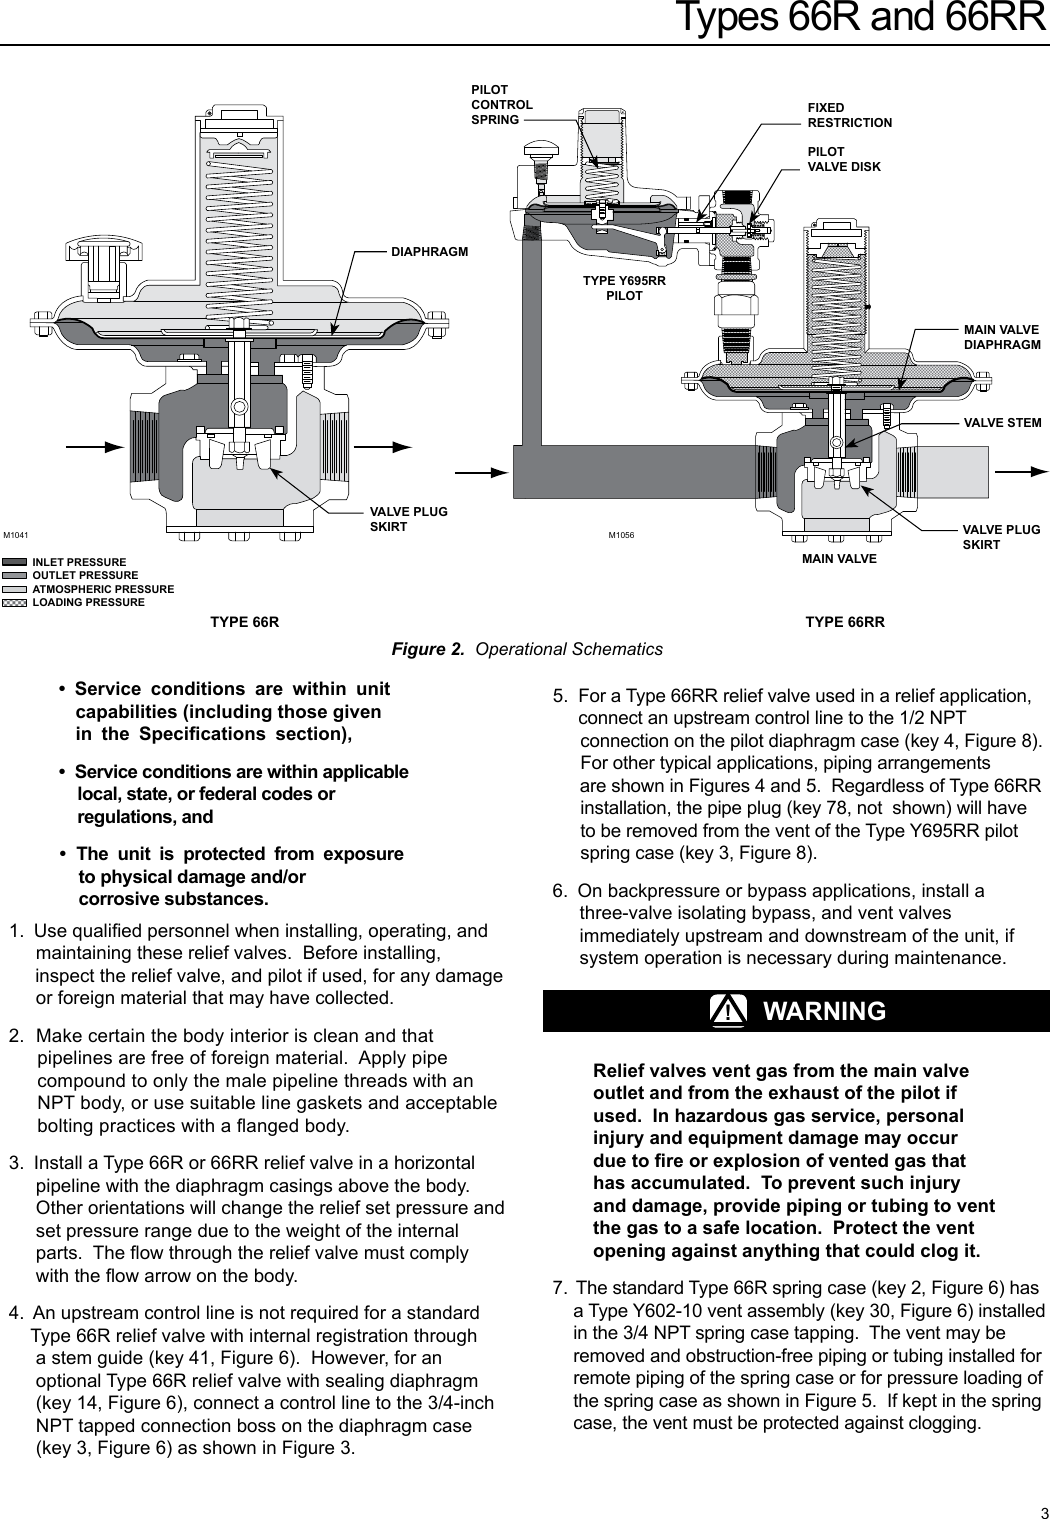 Boss Relief Valve Schematic Electrical Wiring Diagrams Piping Symbols Emerson 66r Series Vapor Recovery Valves Instruction Manual Drain Symbol